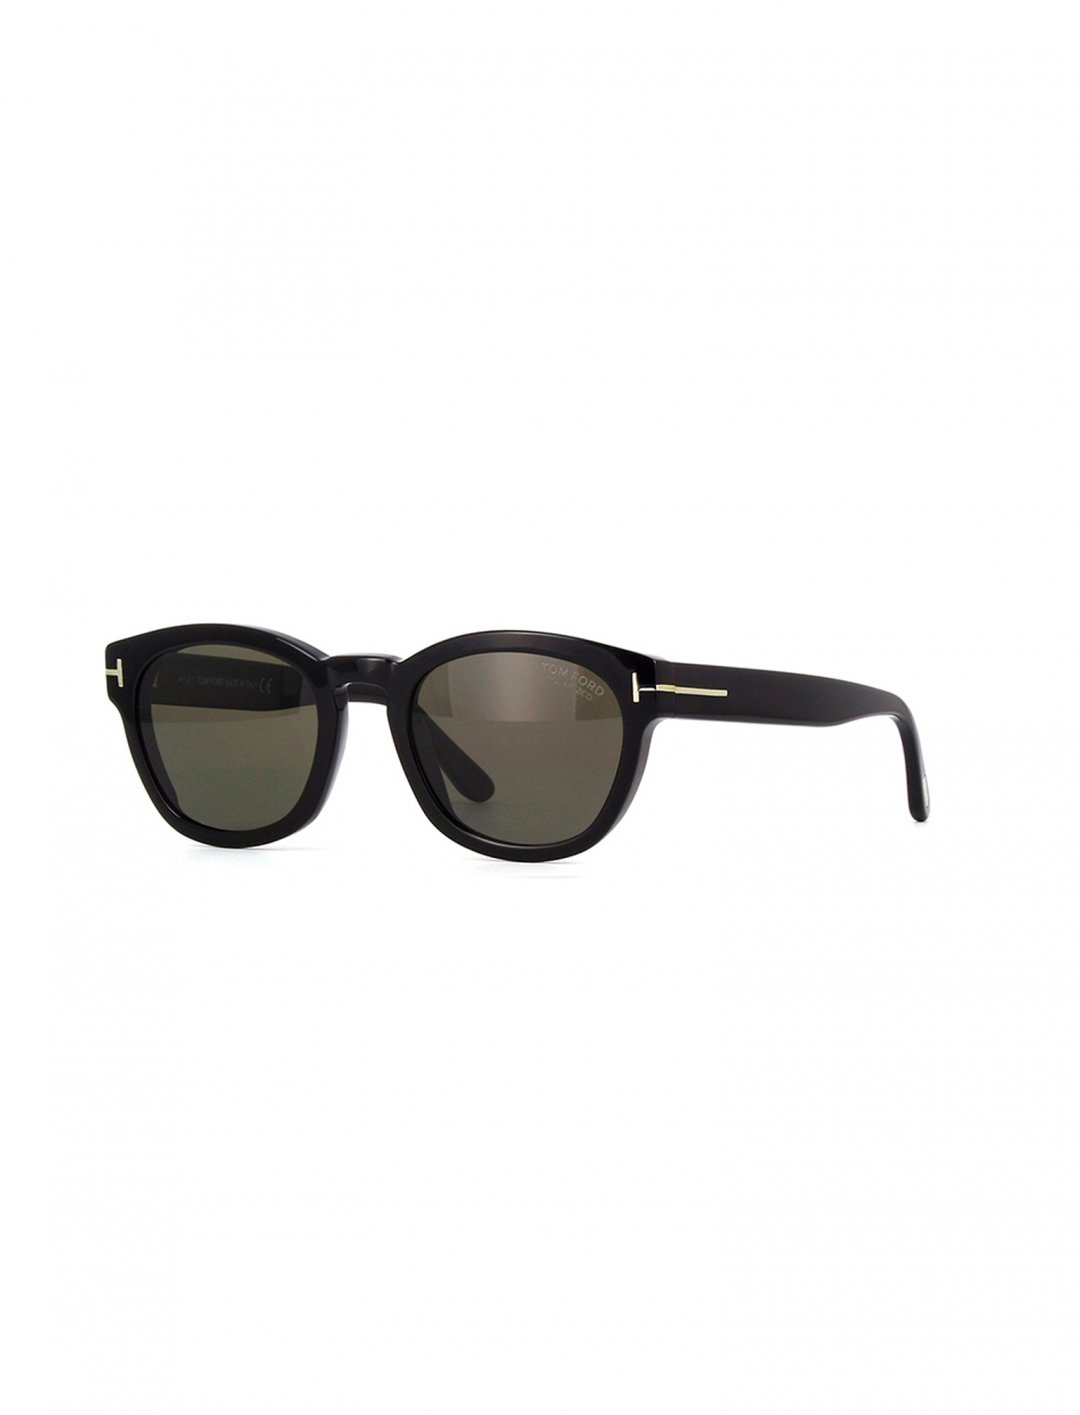 "G-Eazy's Sunglasses {""id"":16,""product_section_id"":1,""name"":""Accessories"",""order"":15} Tom Ford"